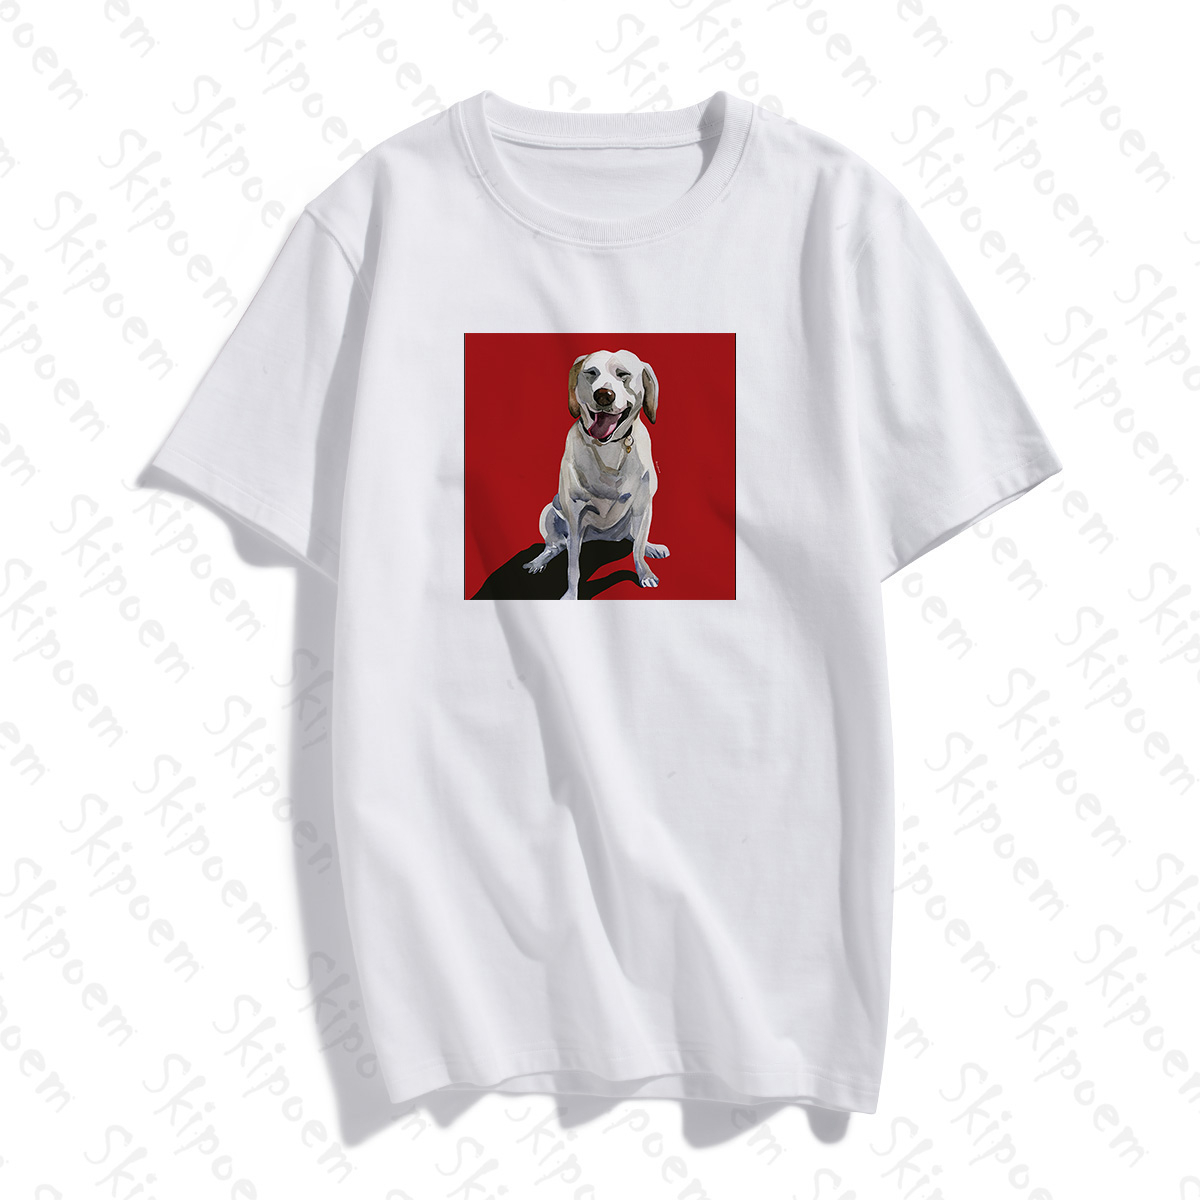 2020 Fashion Cotton T shirt Funny Oil Painting <font><b>Dog</b></font> <font><b>Art</b></font> Custom Cotton O Neck T Shirt Plus Size Short Sleeve Brand Female <font><b>TShirt</b></font> image